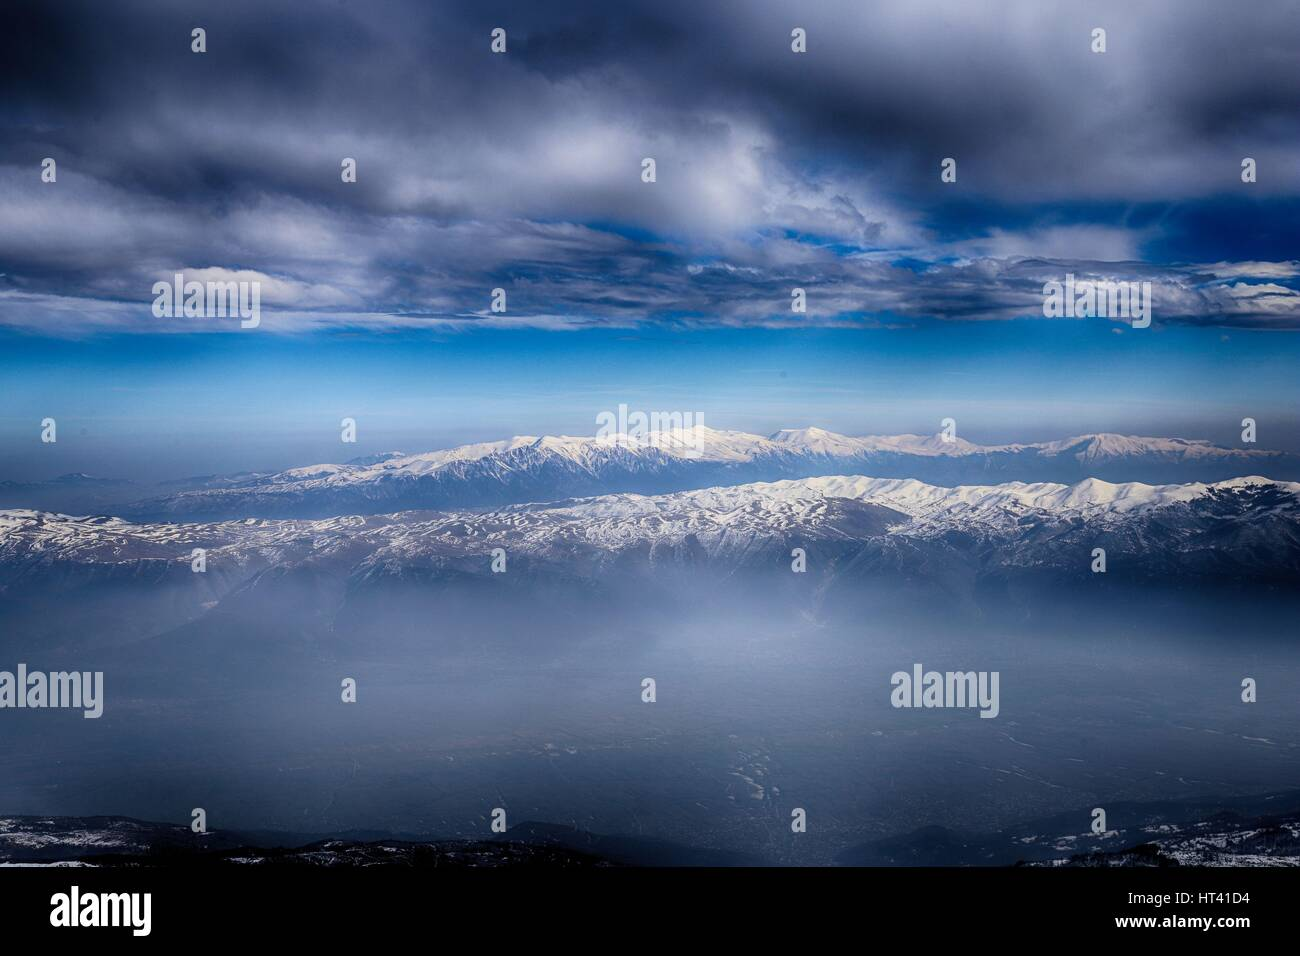 Mountain ranges of Macedonia seen from Sar /Sharr Mountains / Malet e Sharrit between Macedonia and Kosovo in winter - Stock Image